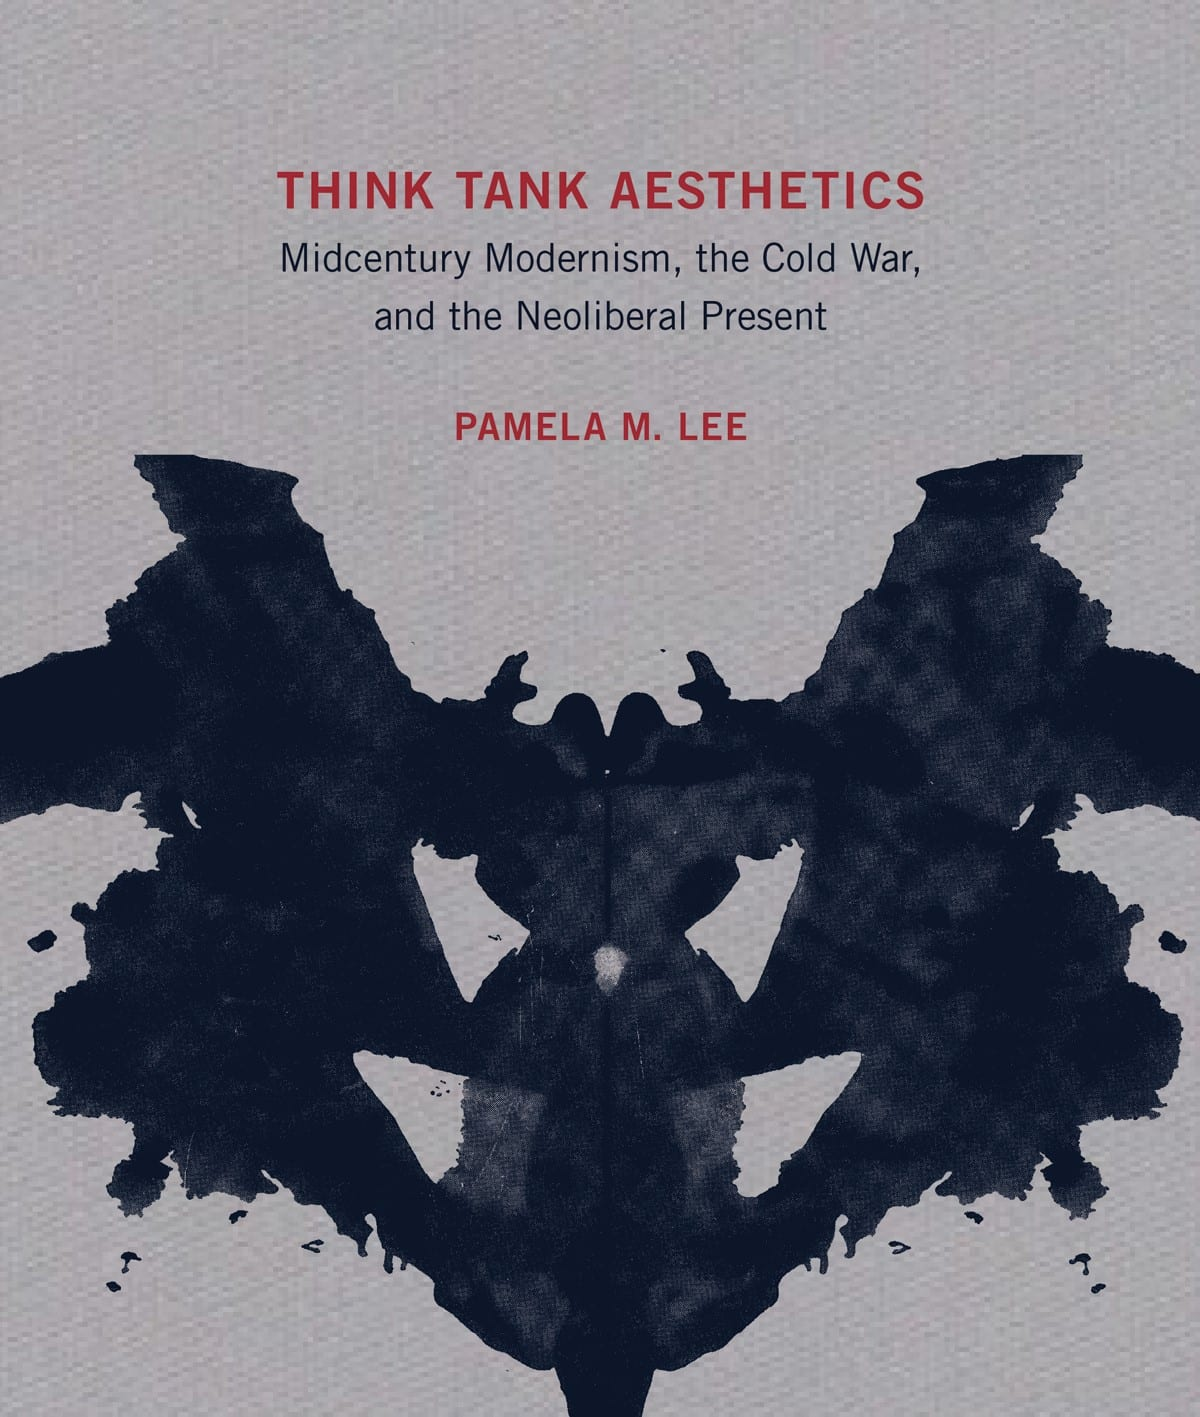 Cover of Ina Blom's book Think Tanks Aesthetics: Midcentury Modernism, the Cold War, and the Neoliberal Present. Shows what appears to be a black inkblot under the title.